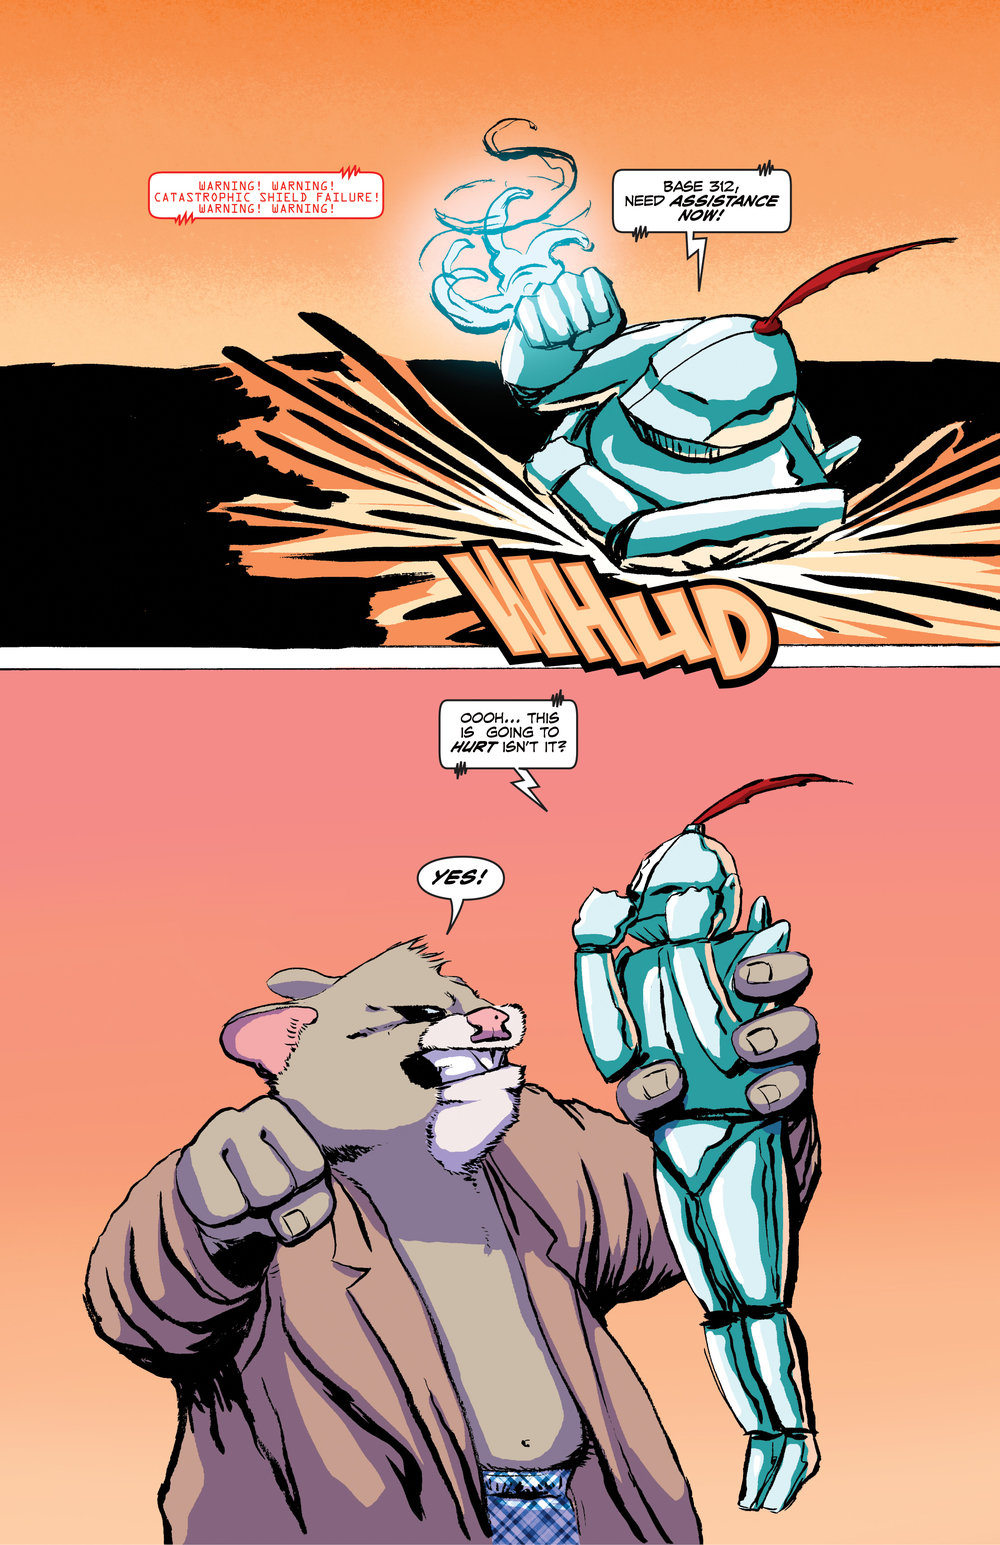 PAGE 8 Roosevelt lifts Jet Knight. JET KNIGHT: ooh this is going to hurt isn't it? ROOSEVELT: Yes.